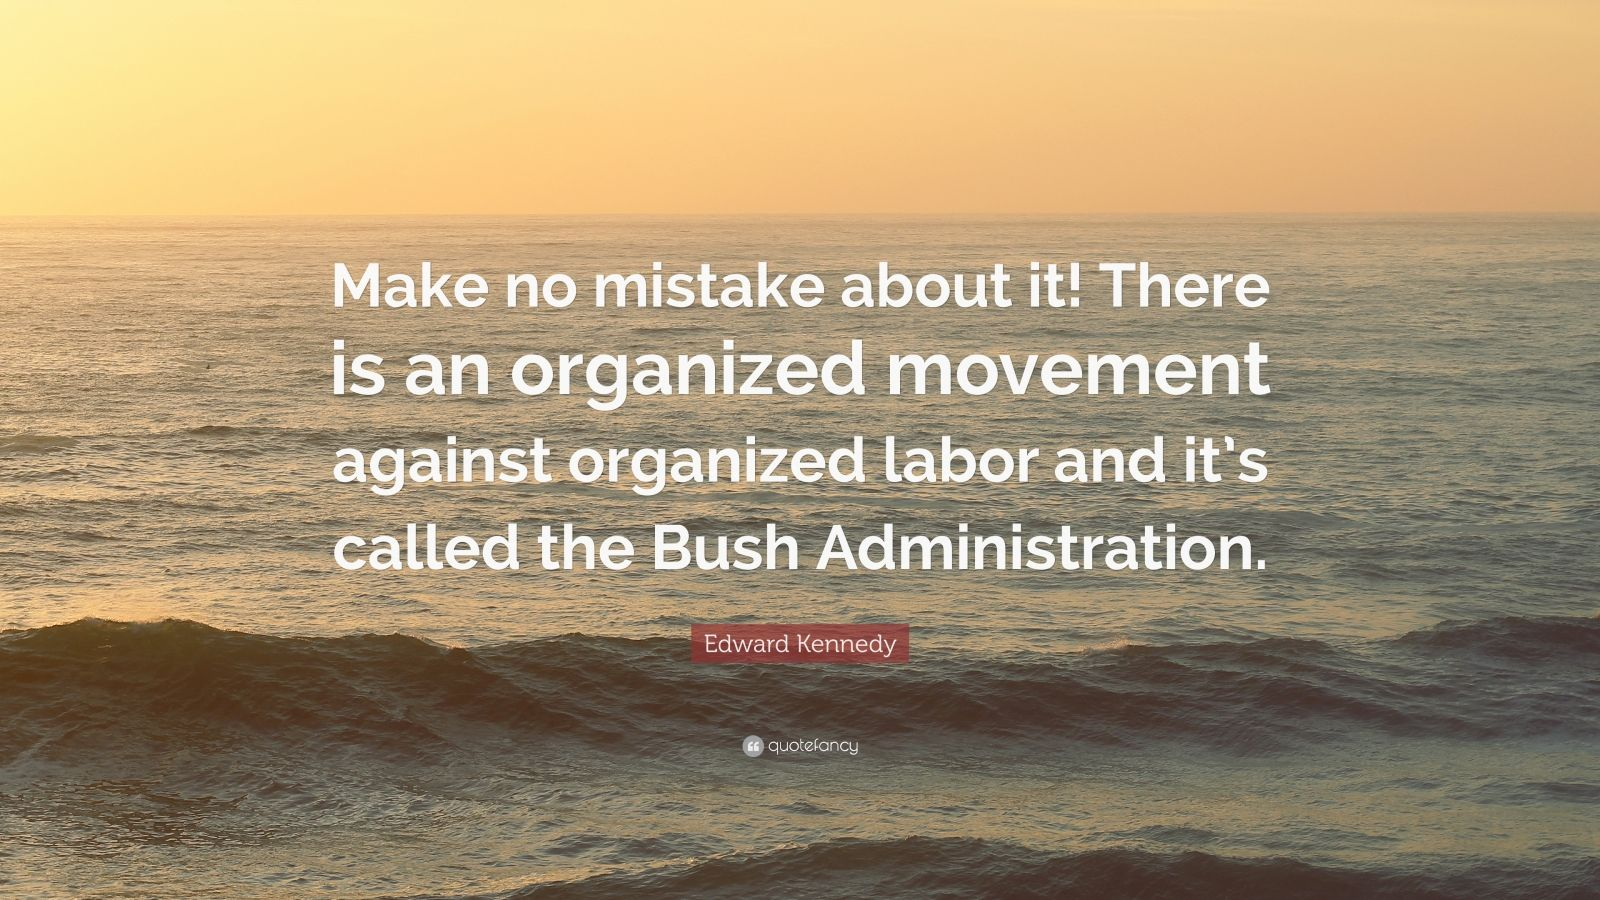 """Edward Kennedy Quote: """"Make no mistake about it! There is an organized movement against organized labor and it's called the Bush Administration."""""""